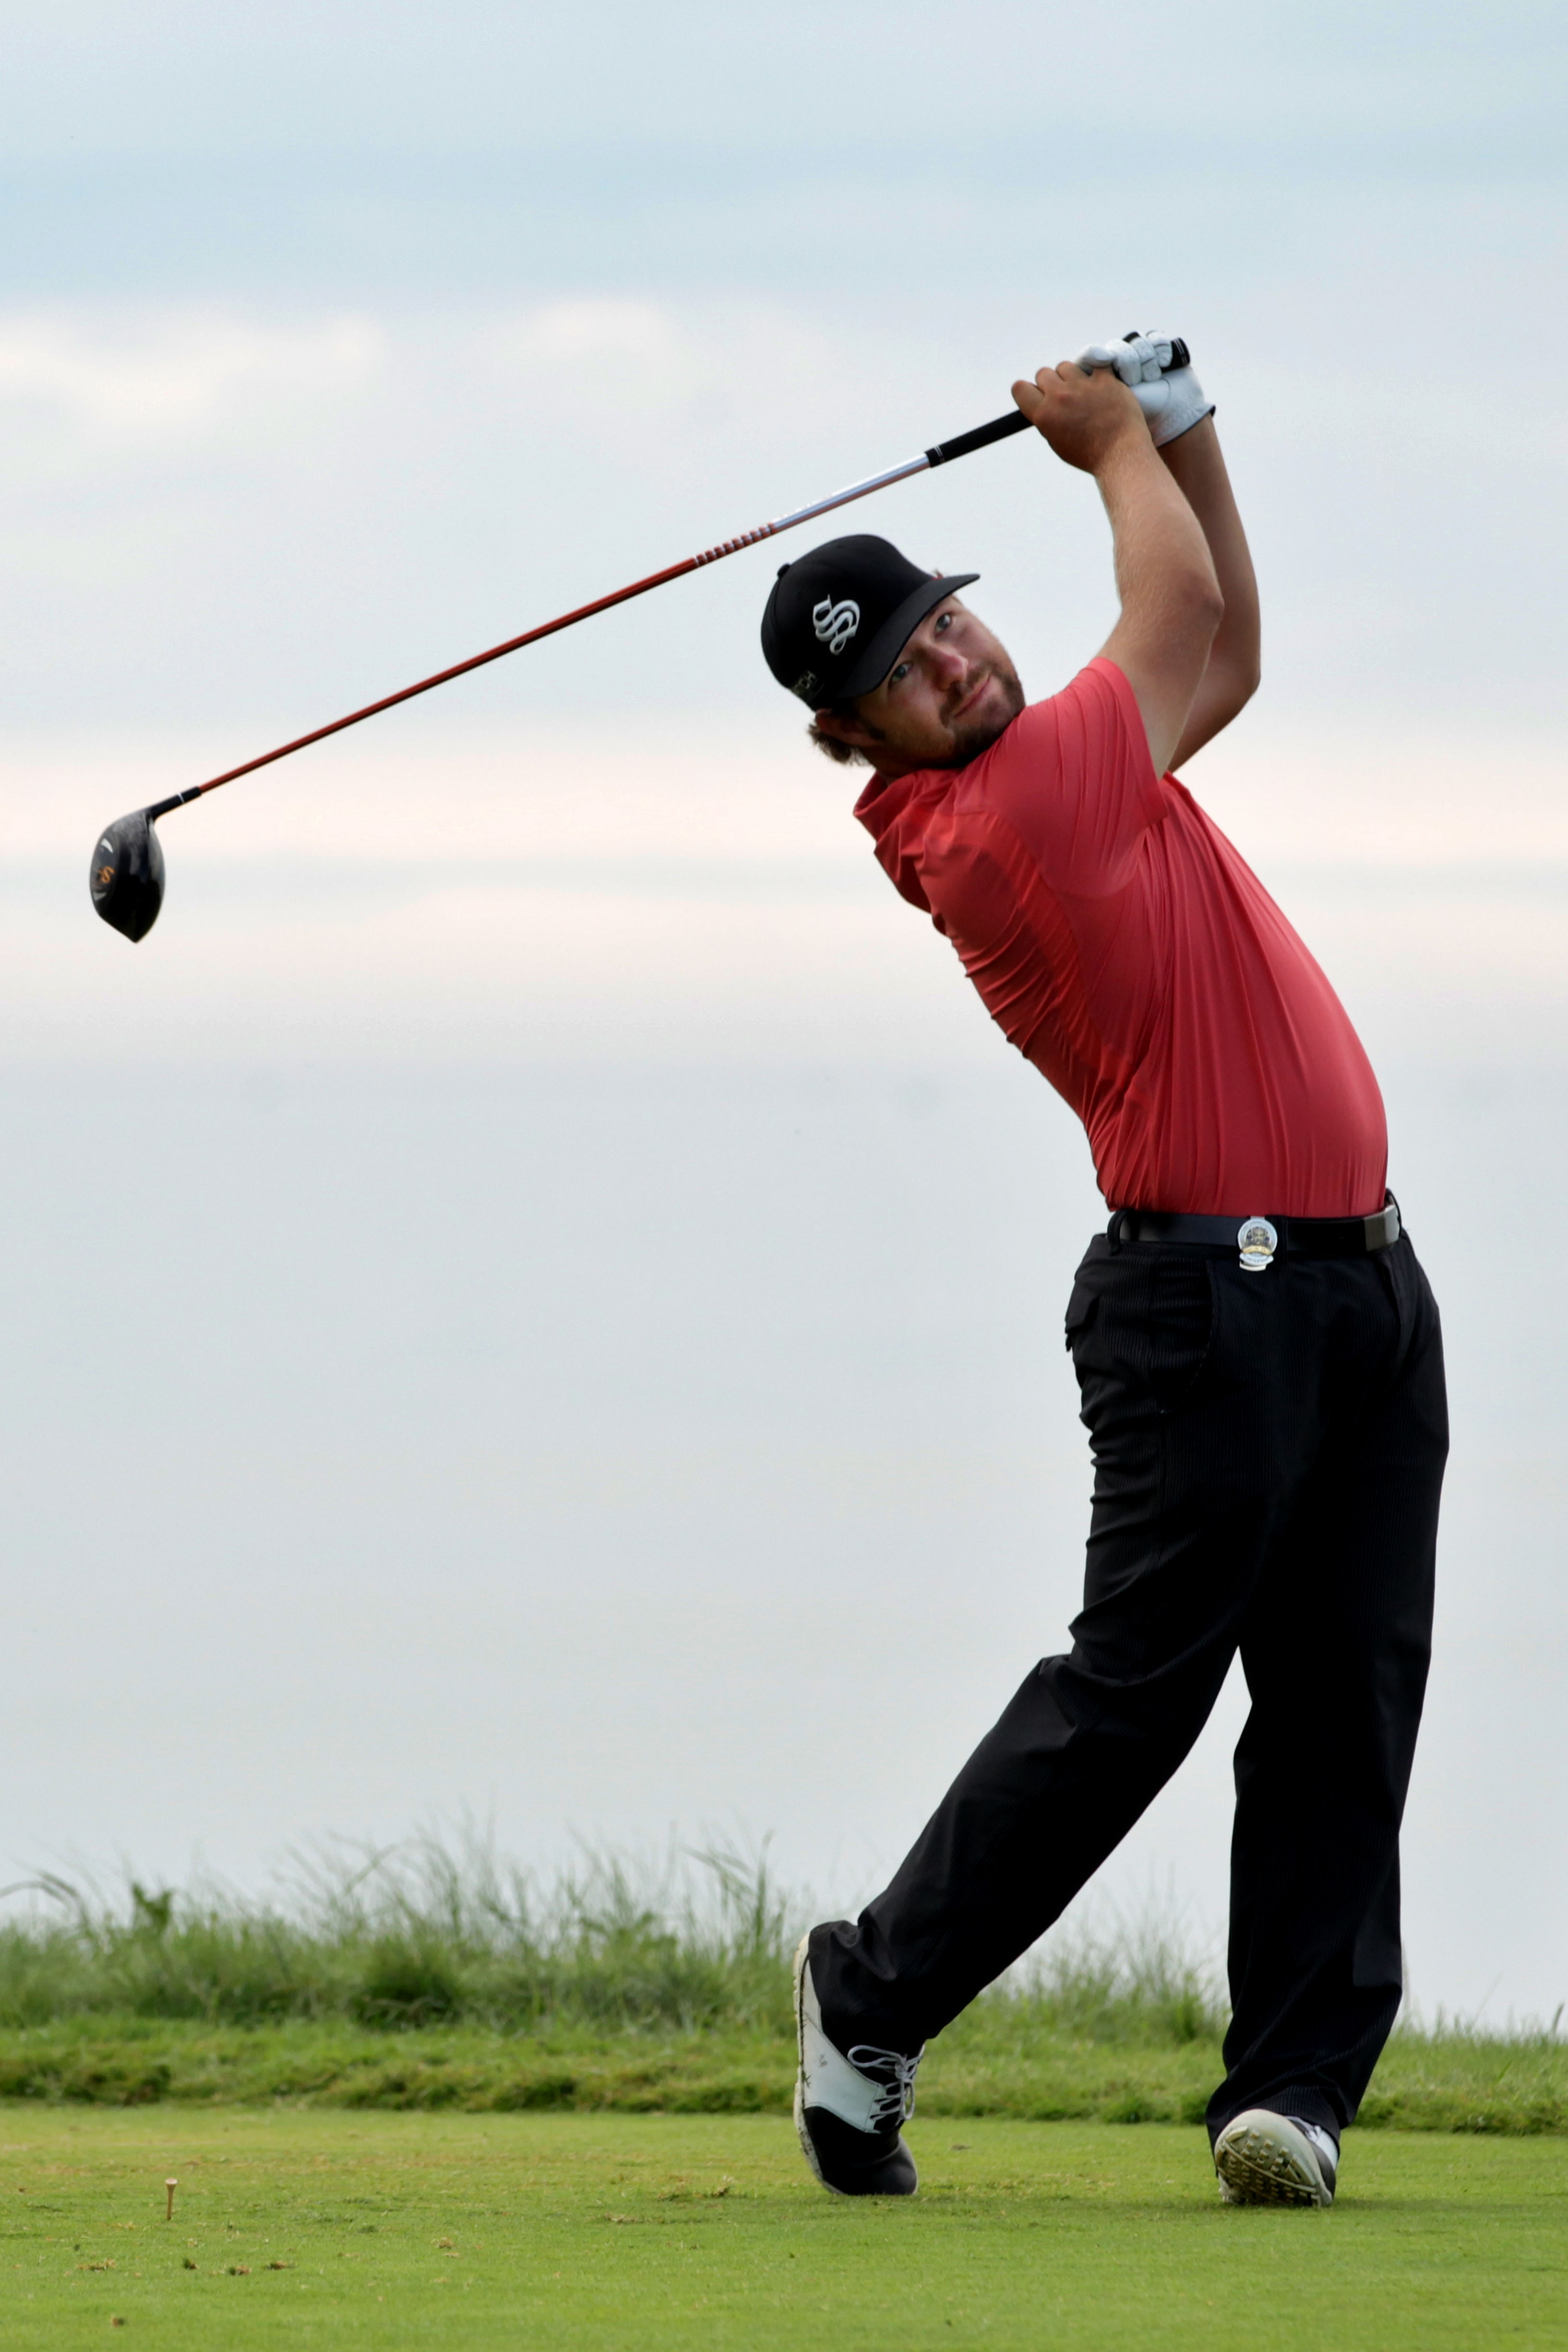 KOHLER, WI - AUGUST 14:  Ryan Moore hits his tee shot on the ninth hole during the continuation of the second round of the 92nd PGA Championship on the Straits Course at Whistling Straits on August 14, 2010 in Kohler, Wisconsin.  (Photo by Andrew Redingto